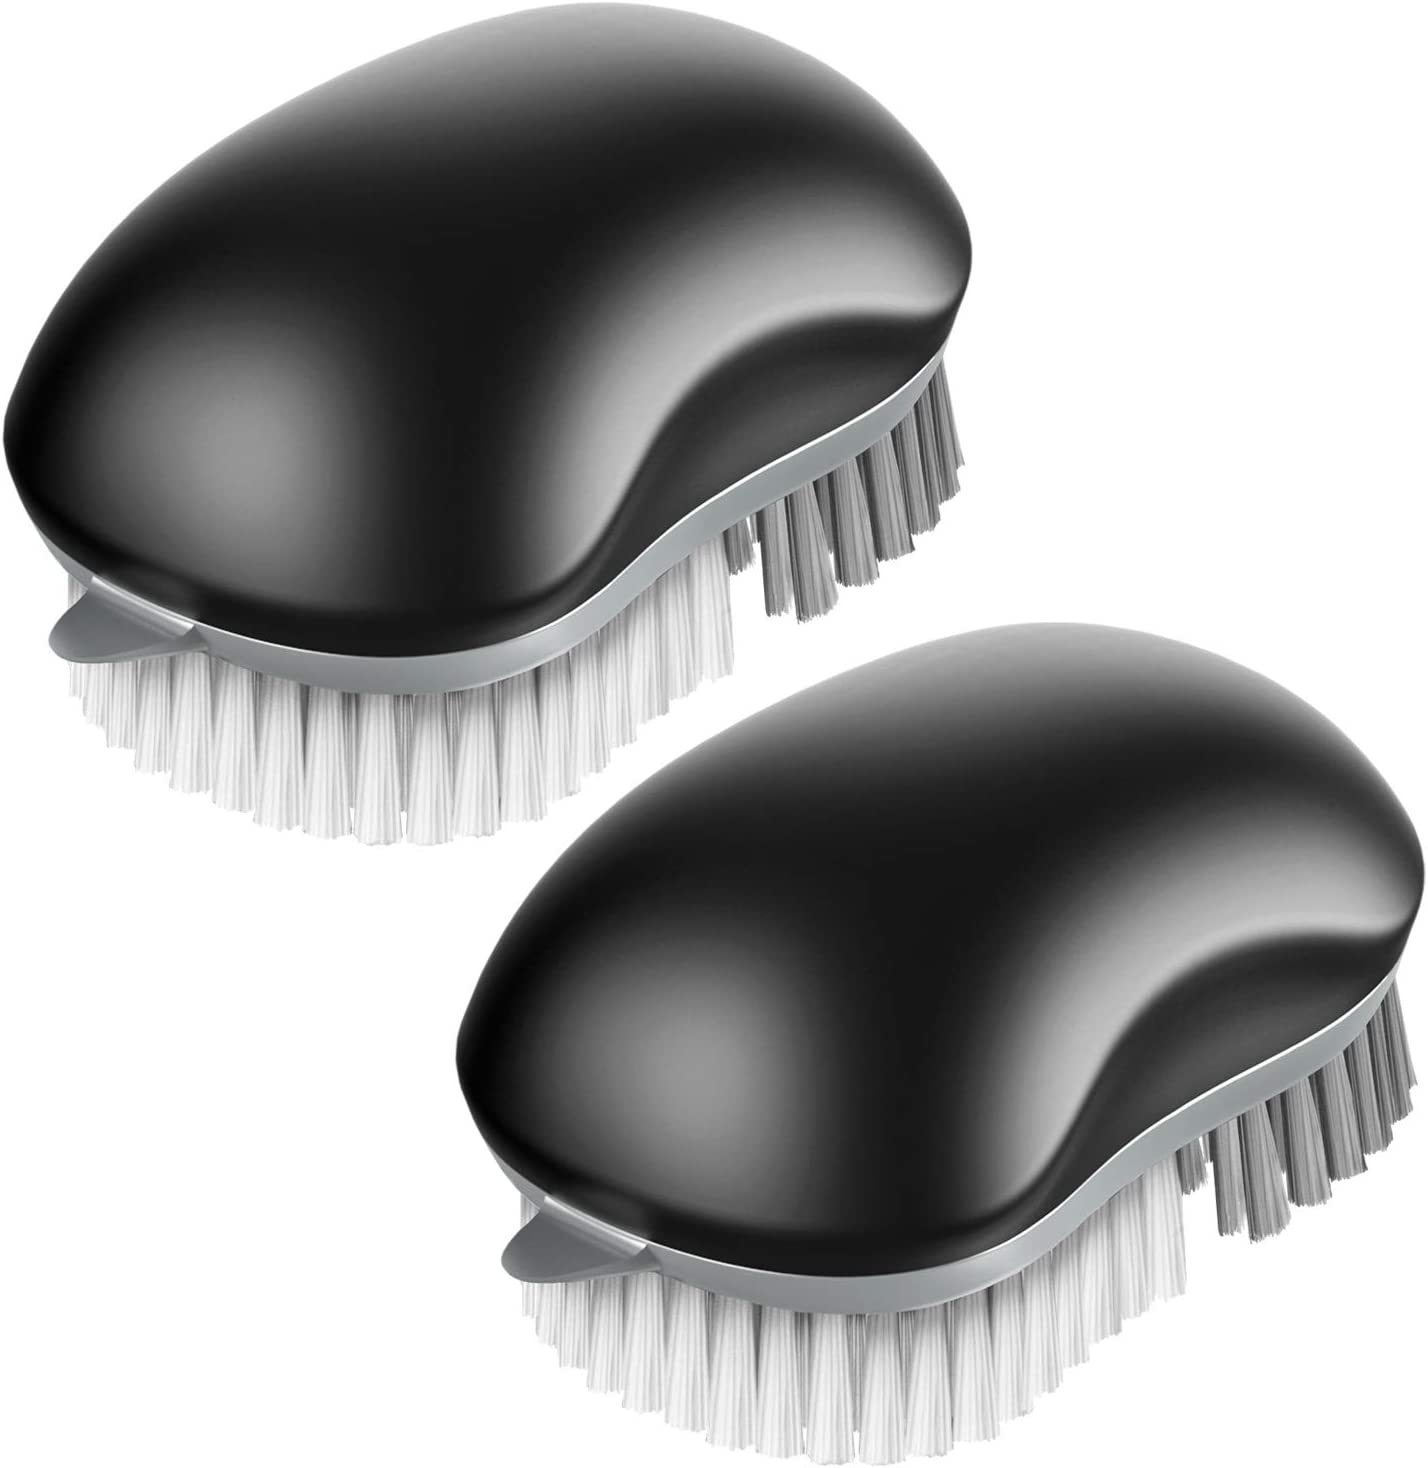 MR.SIGA Fruit and Vegetable Cleaning Brush with Non Slip Comfortable Grip, Pack of 2, Black